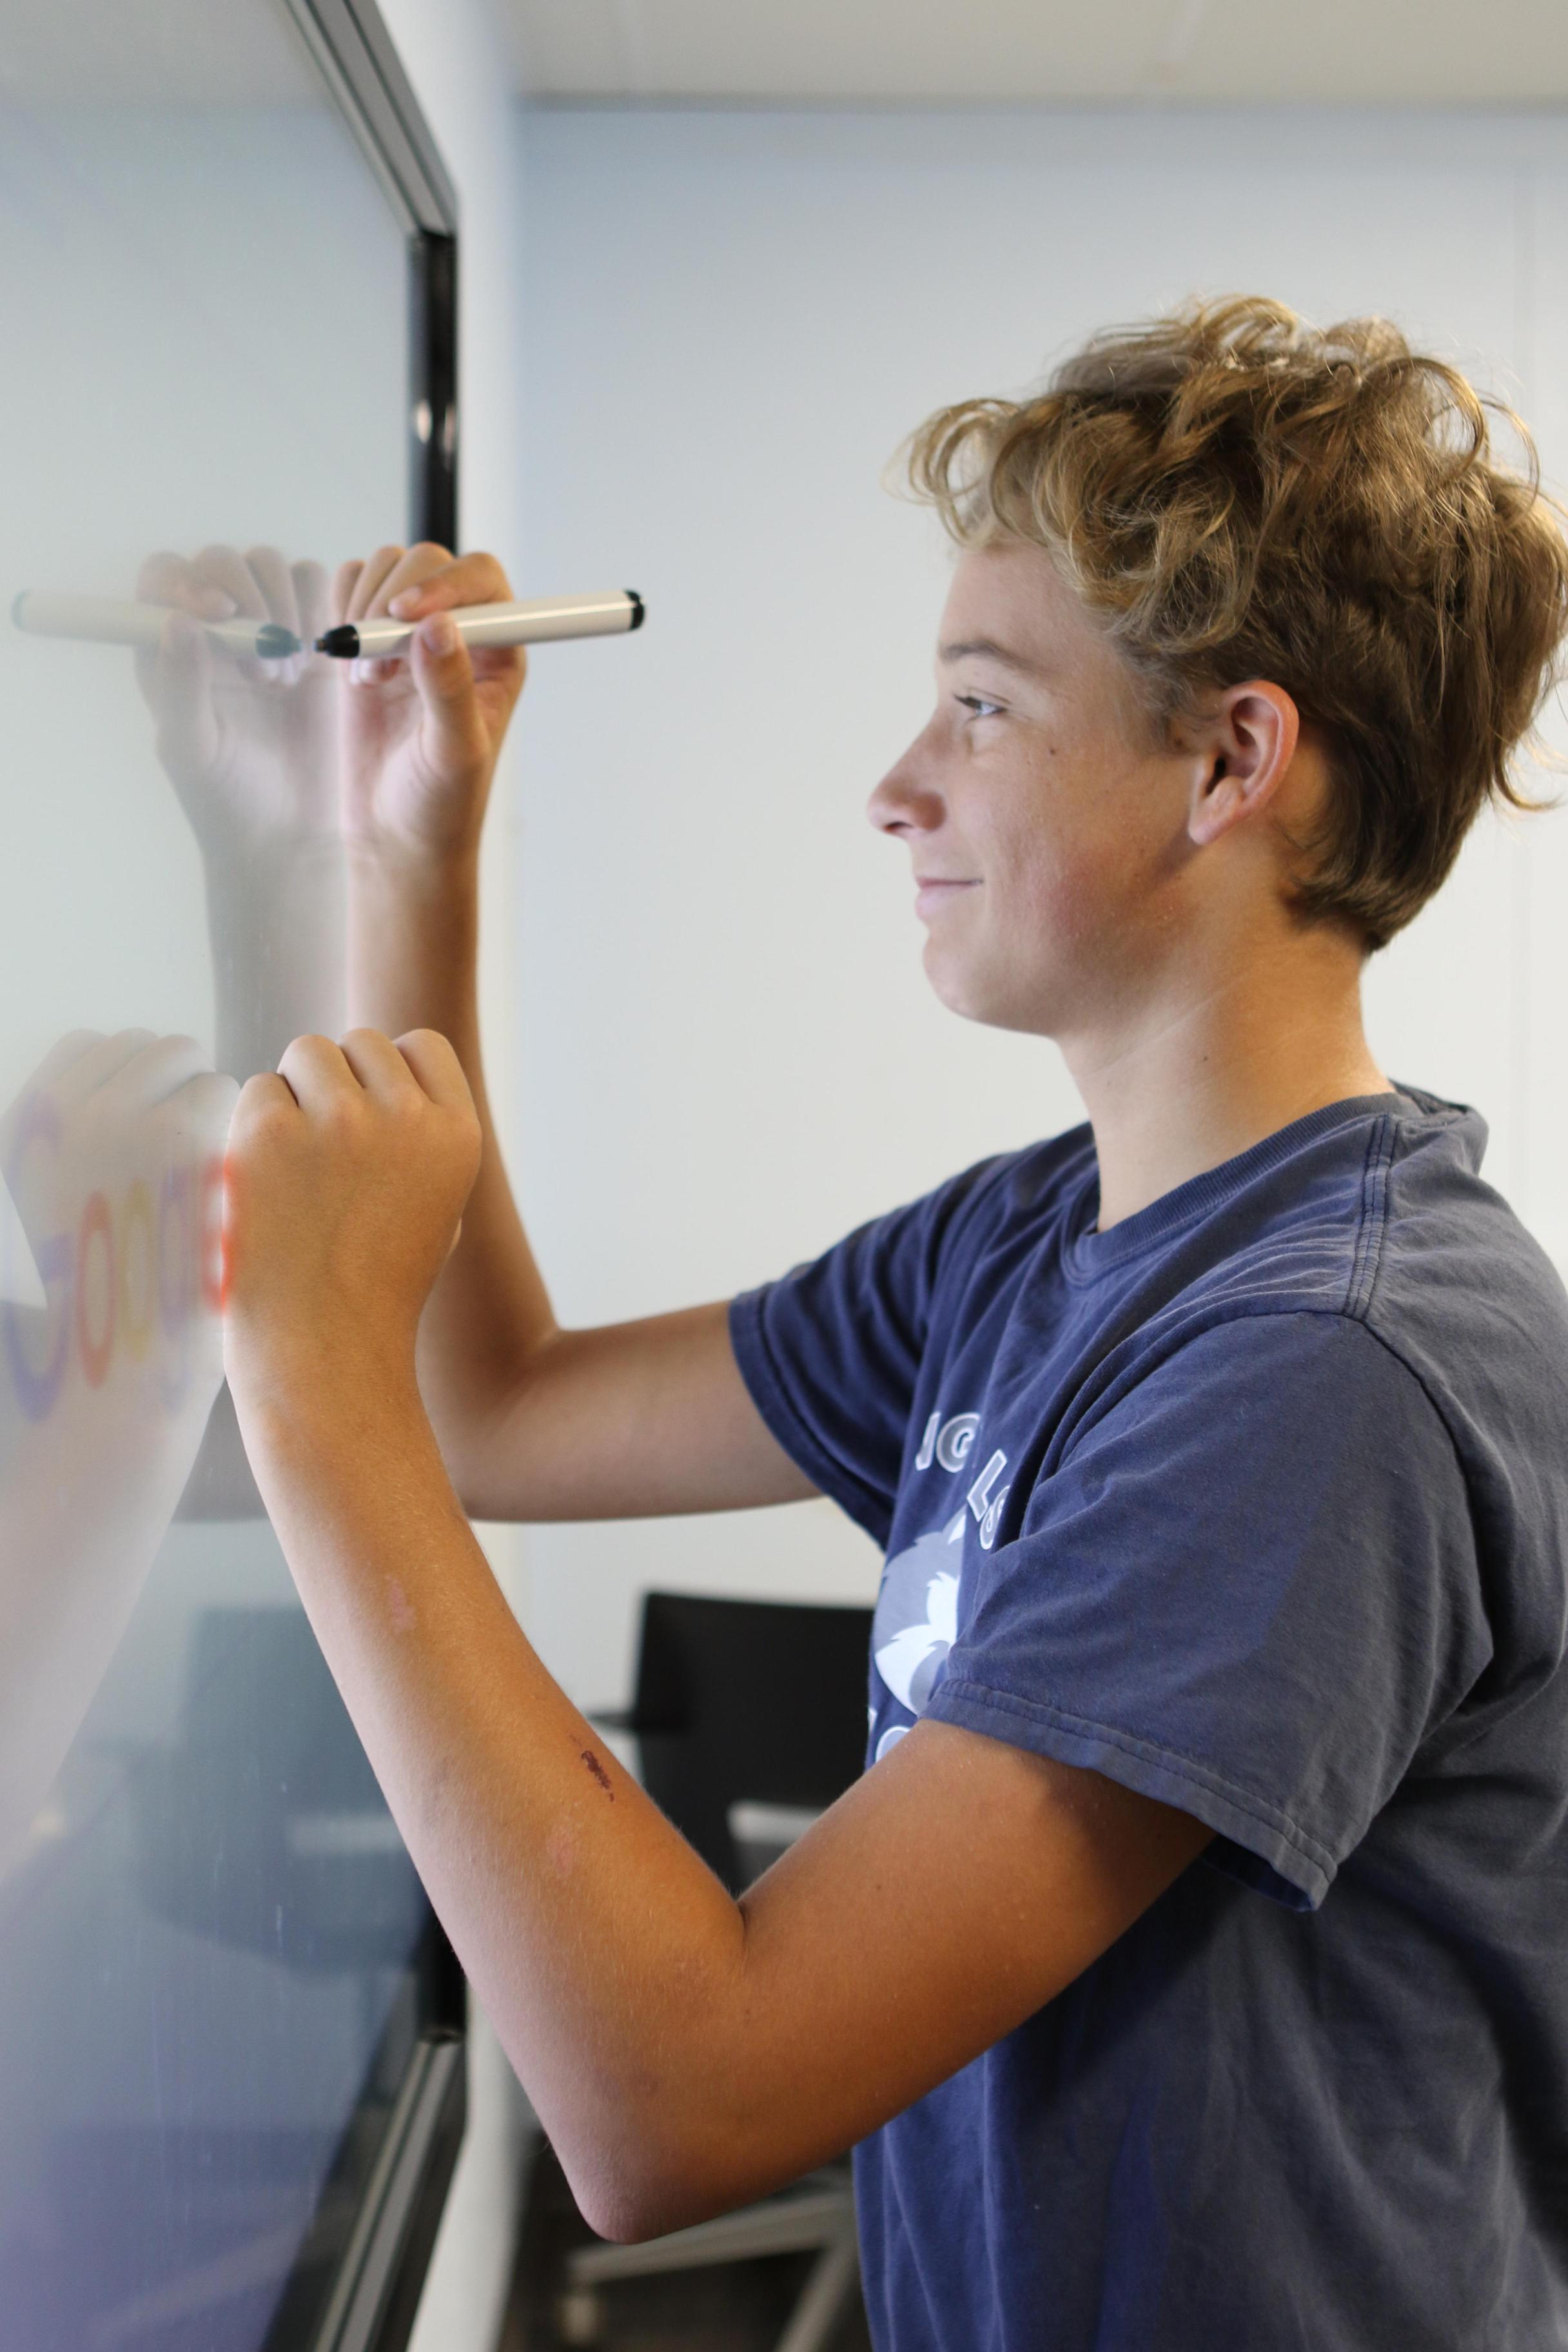 Upper school Renaissance student reviewing work on a digital whiteboard.